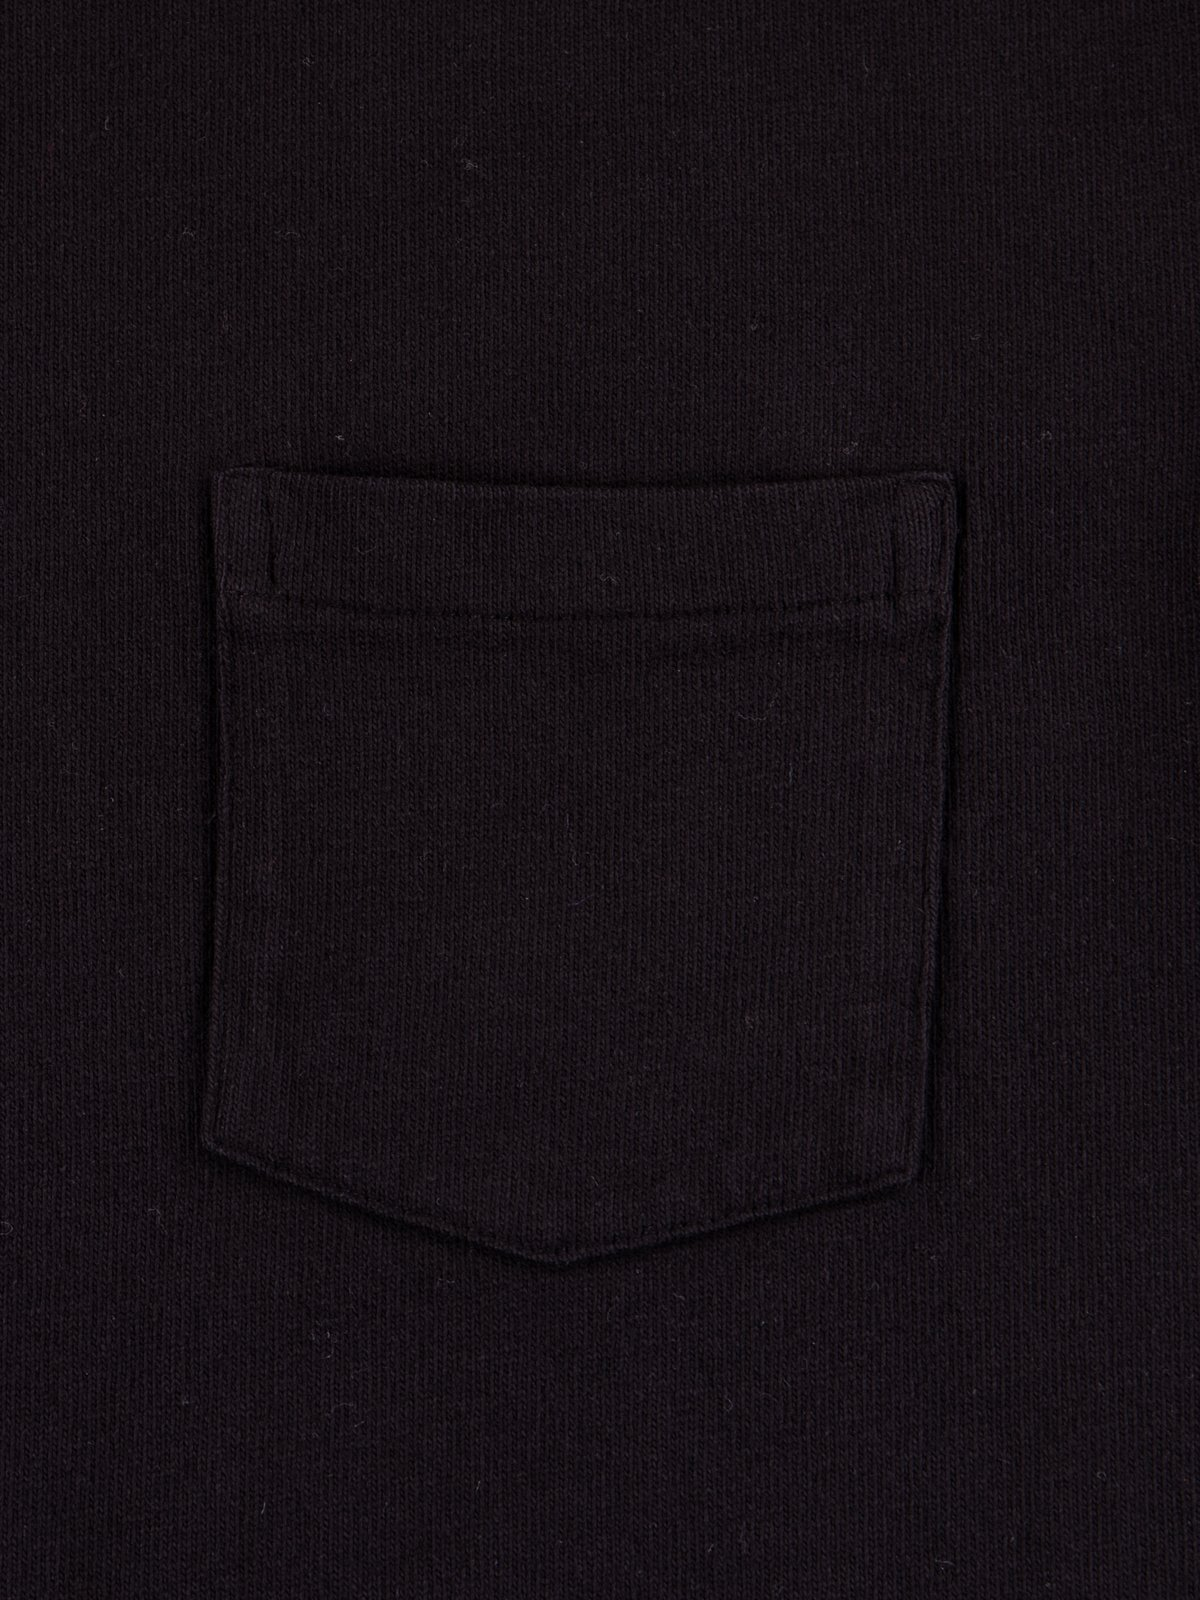 Black Heavy Oz Pocket Tee - Image 3